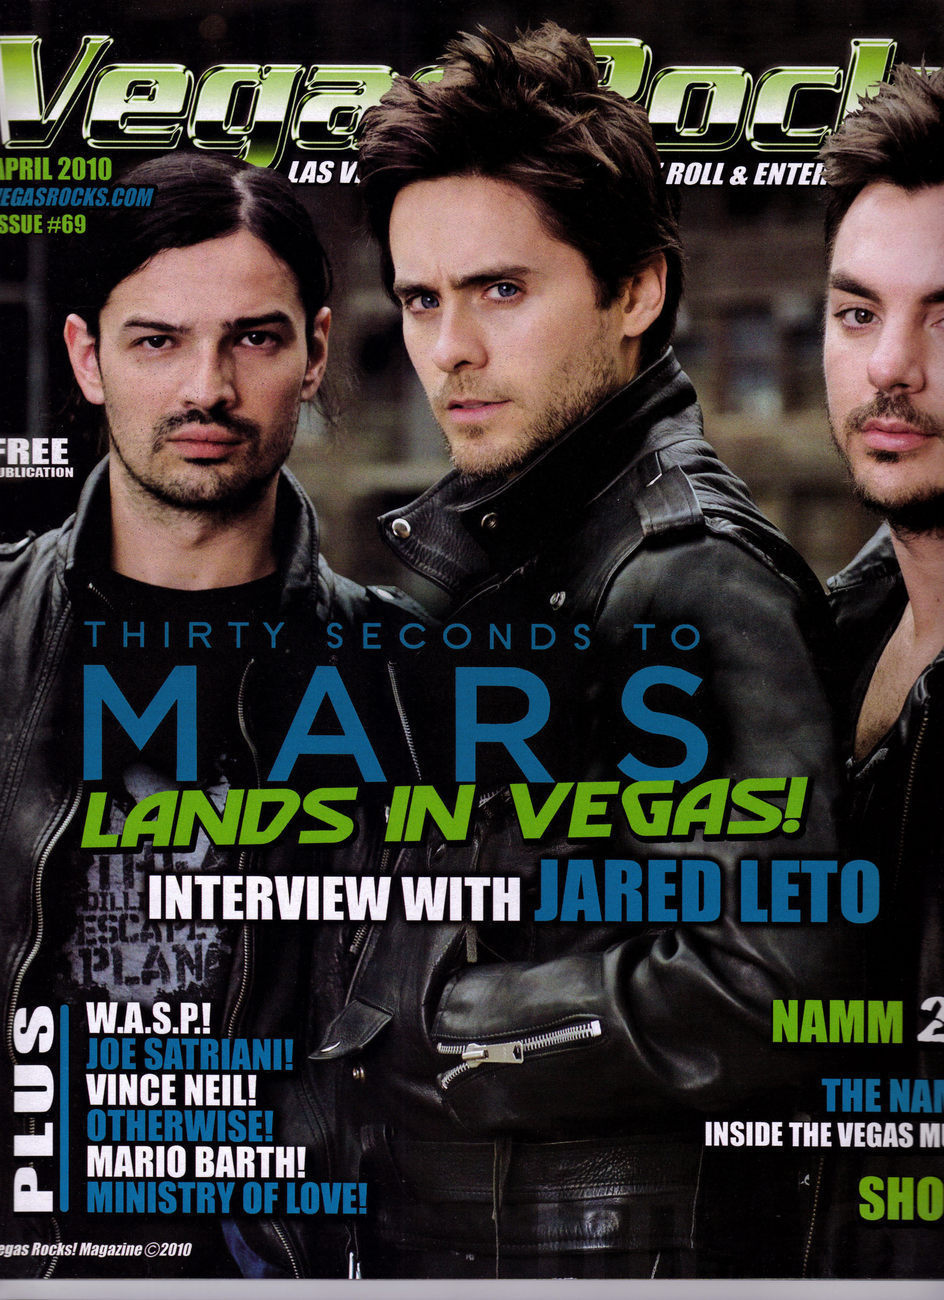 Primary image for Vegas Rocks: 30 Seconds To Mars Interview w/ Jared Leto